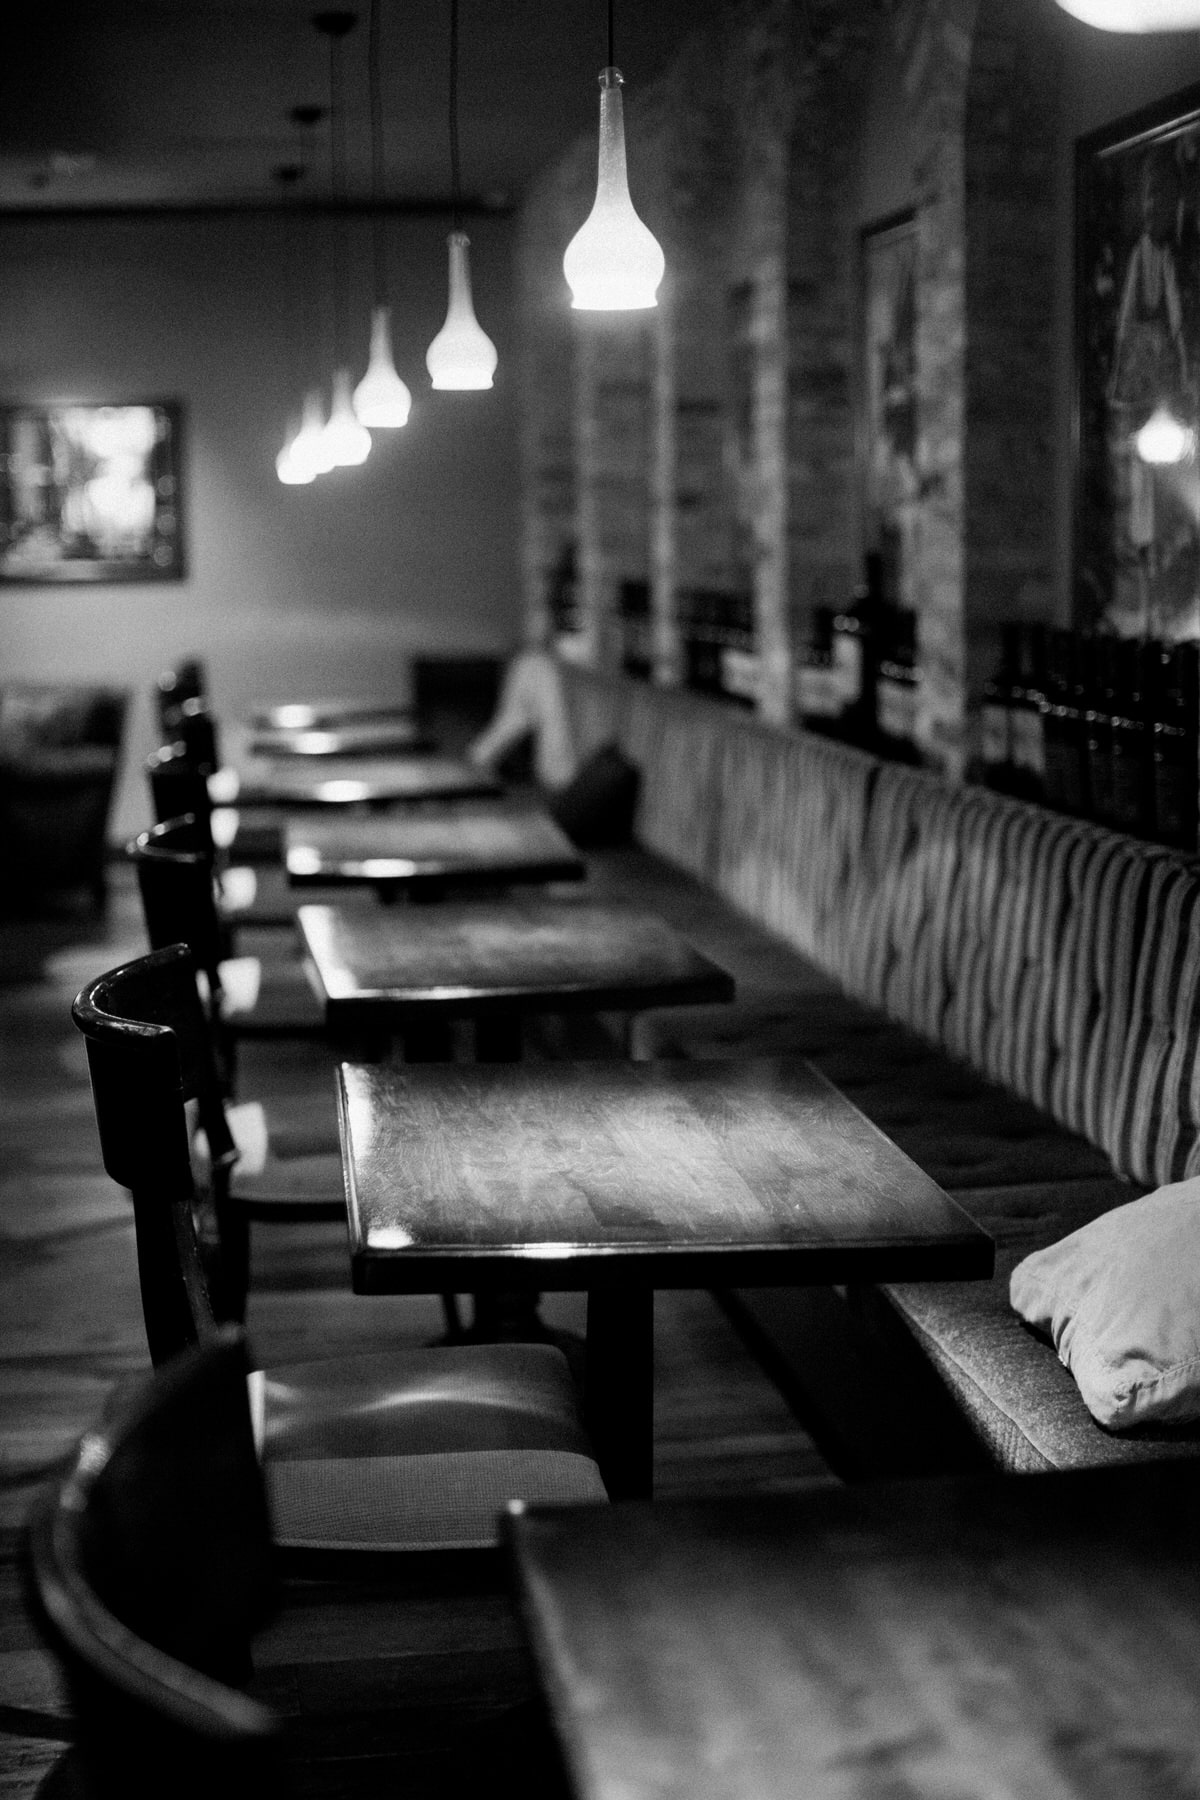 Immigrant-Room-Restaurant-American-Club-Kohler-Wisconsin-black-and-white-fine-art-photography-by-Studio-L-photographer-Laura-Schneider-_6384